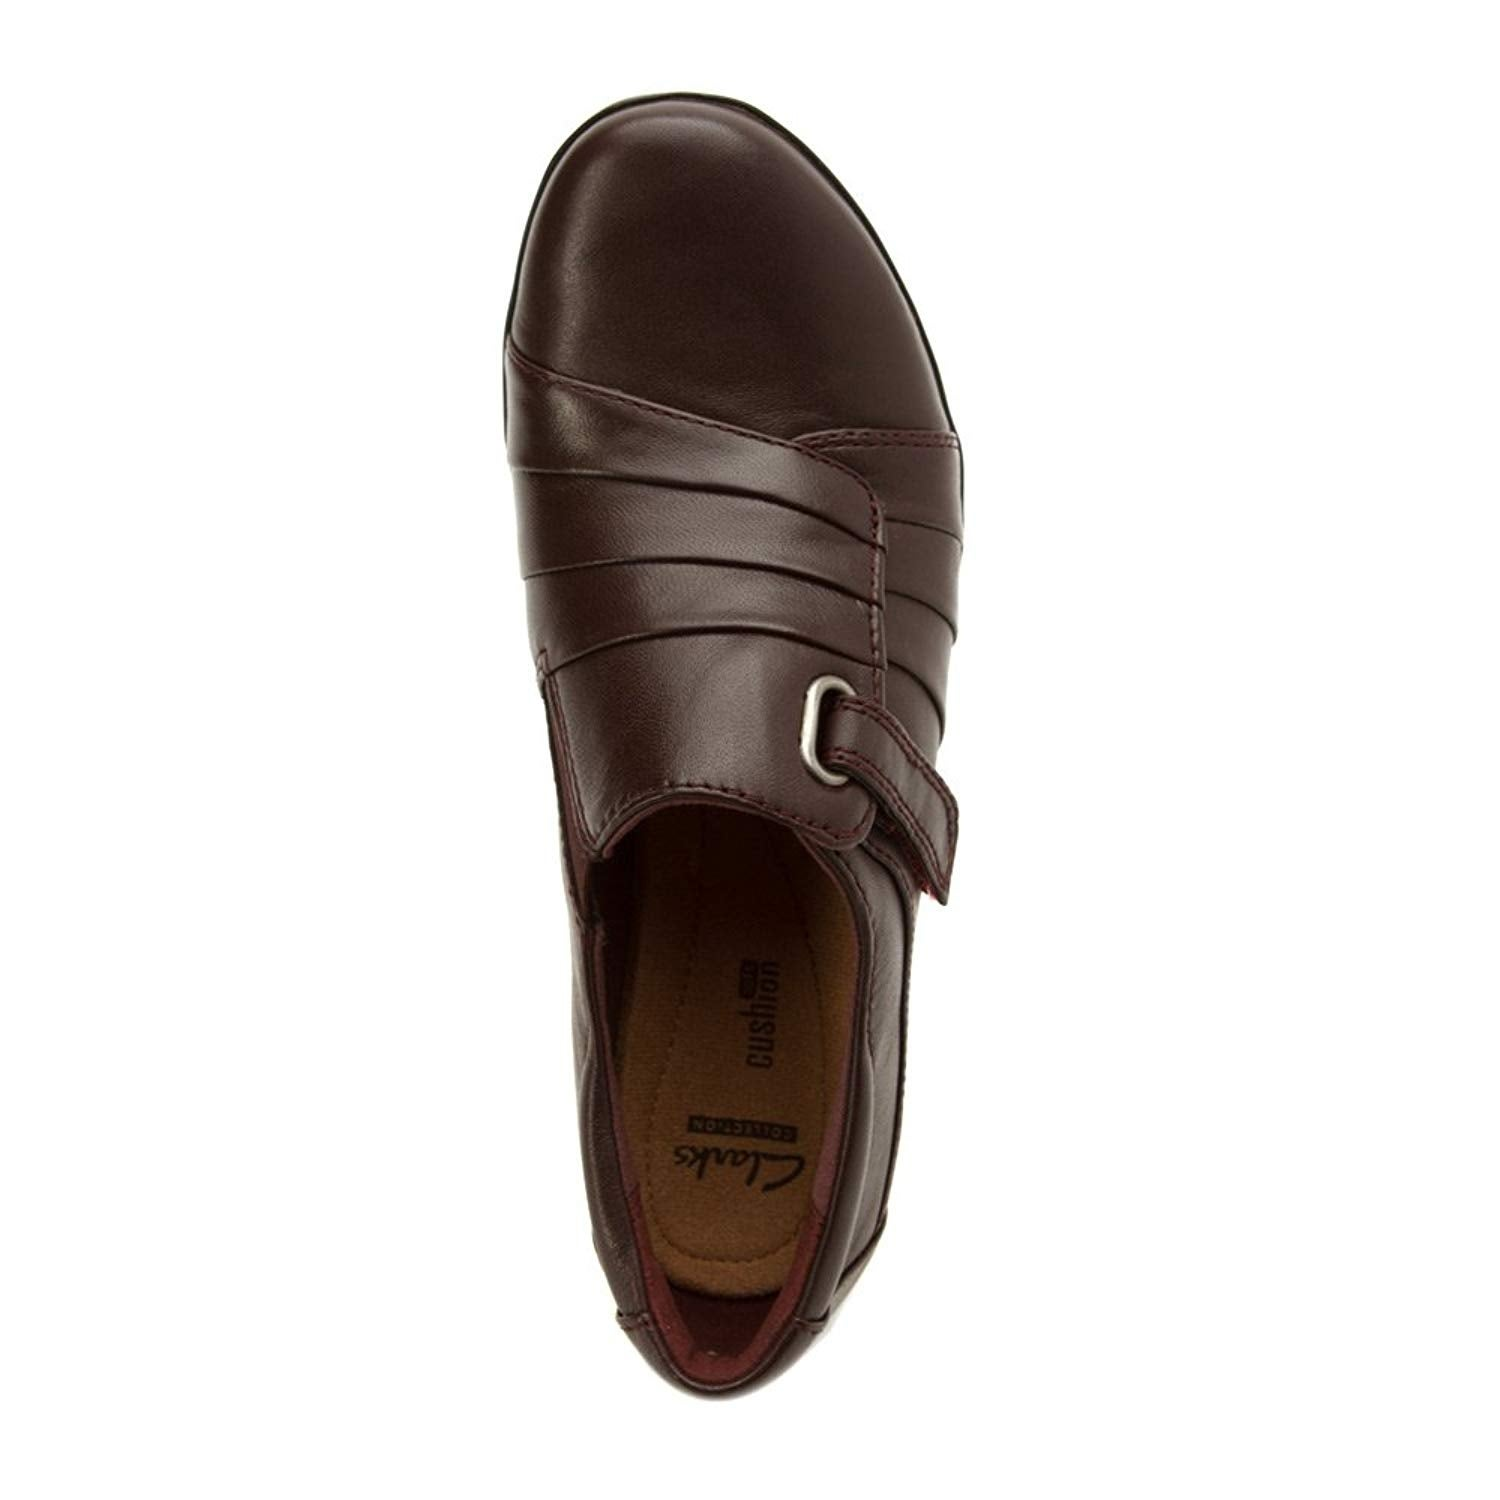 Shop Clarks Womens 26122355 Closed Toe Mules - Free Shipping On Orders Over  $45 - Overstock.com - 23125450